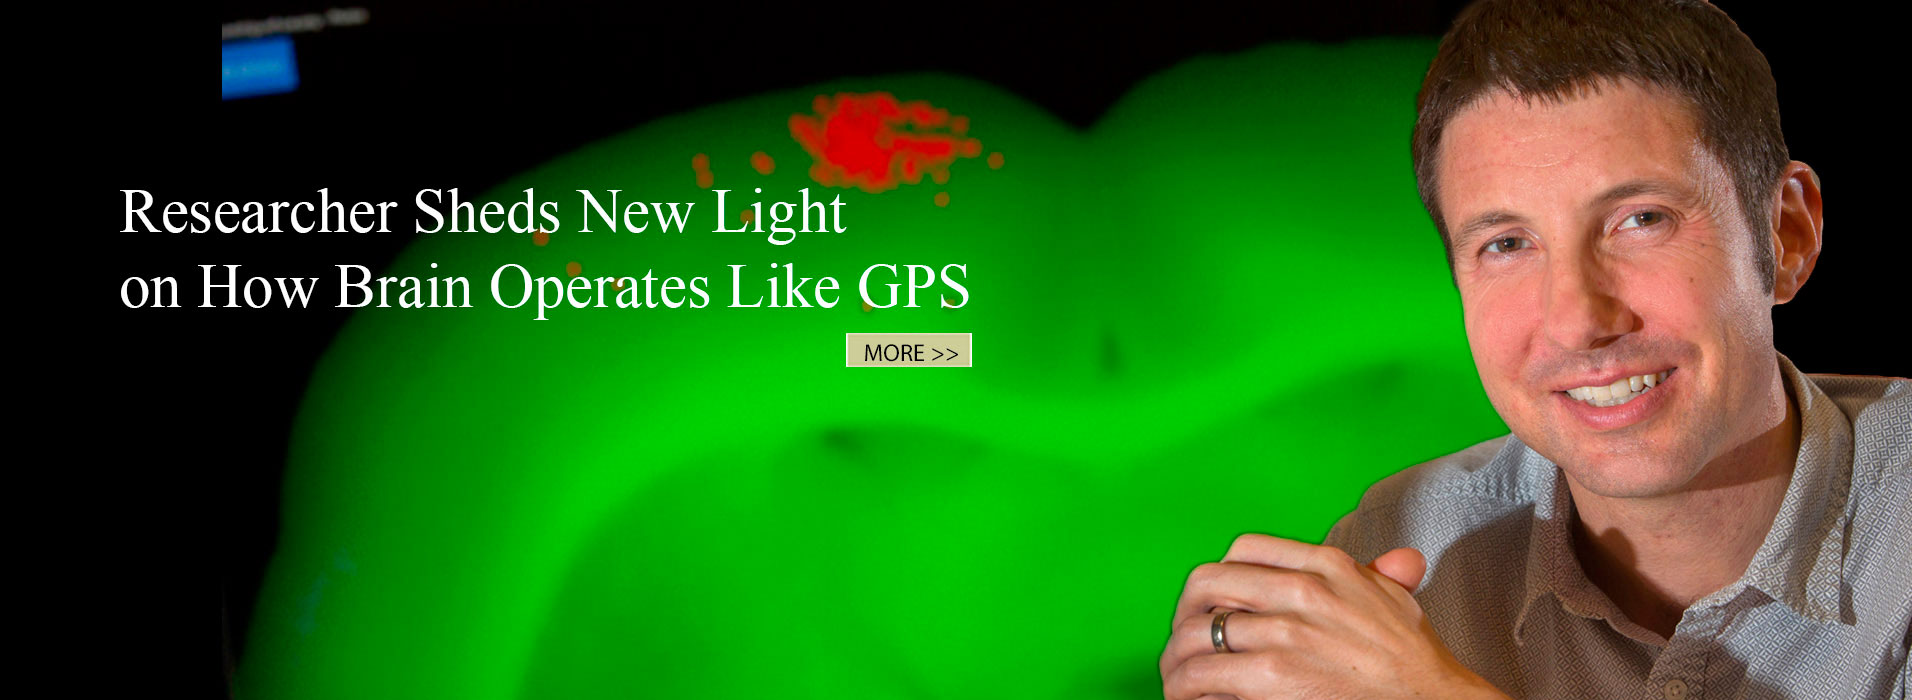 Researcher Sheds New Light on How Brain Operates Like GPS